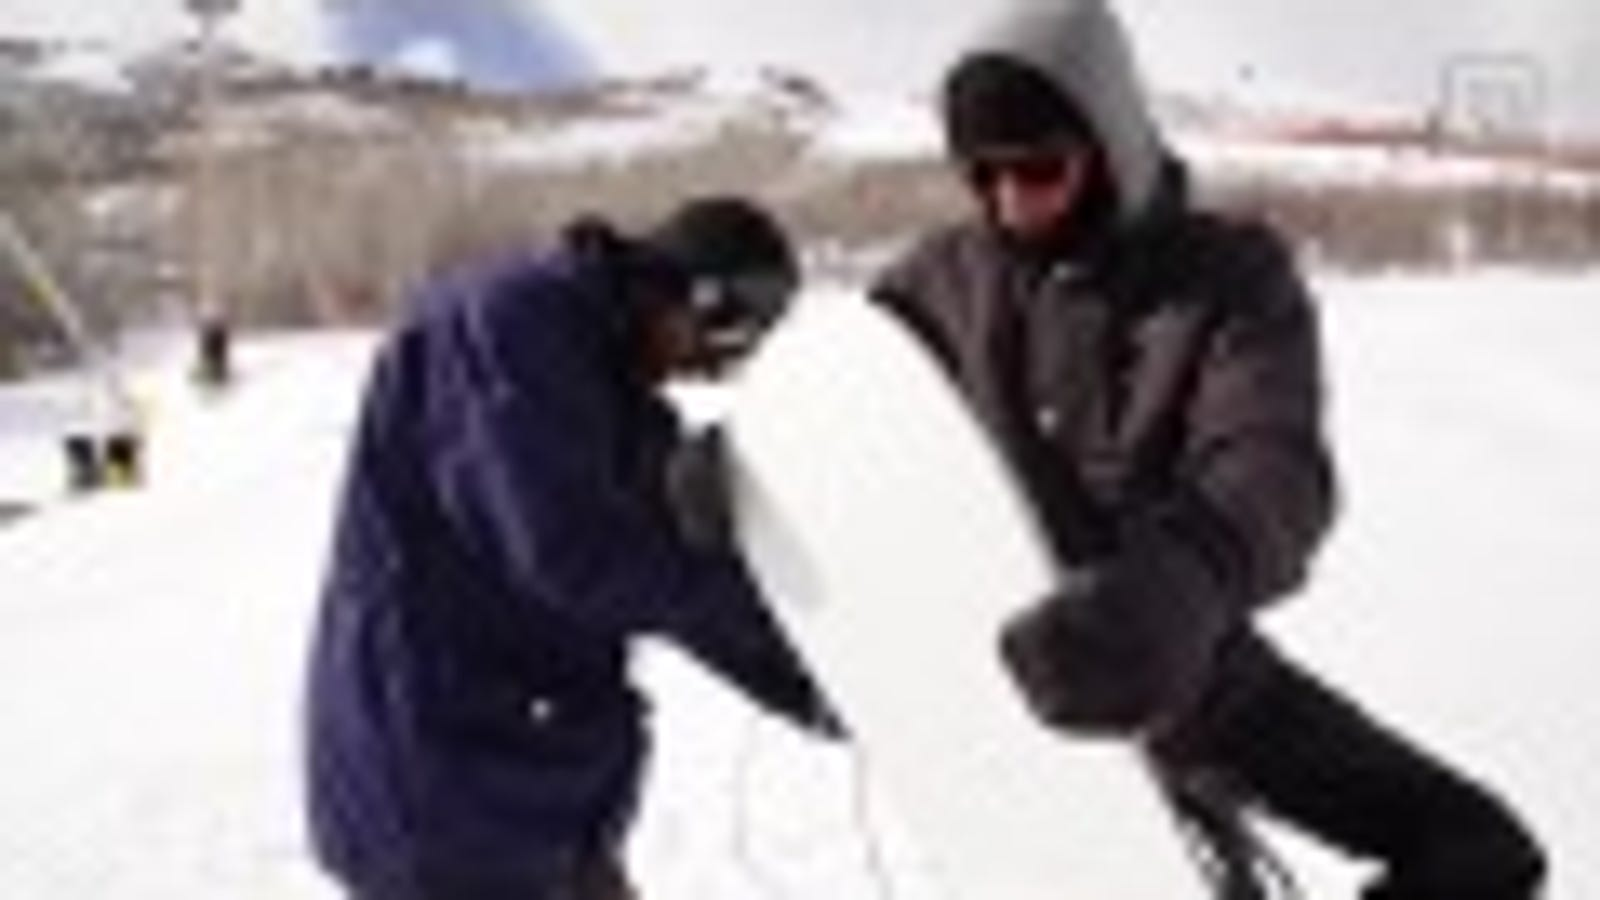 Watch a Mad Scientist Build and Ride a 128-Degree Heated Snowboard